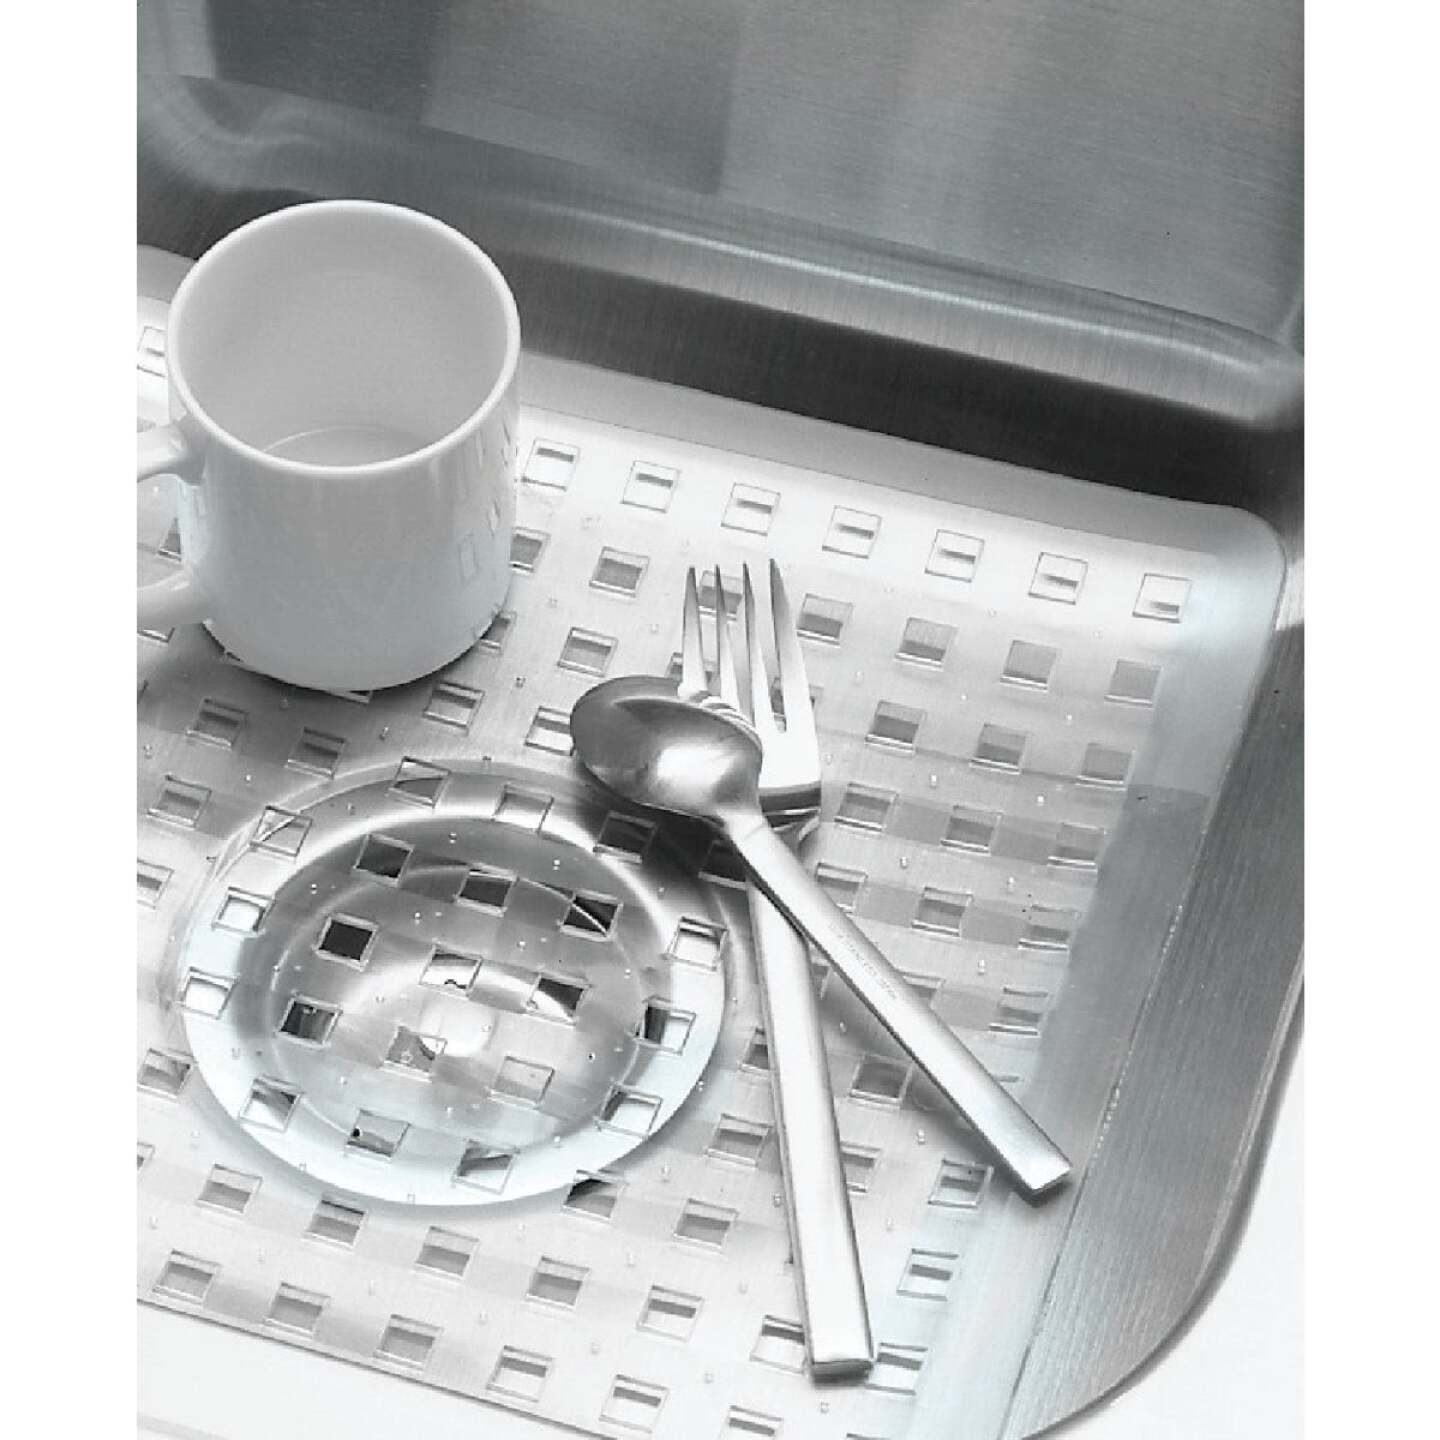 InterDesign Sinkworks 12.5 In. x 16 In. Euro Sink Mat Image 1